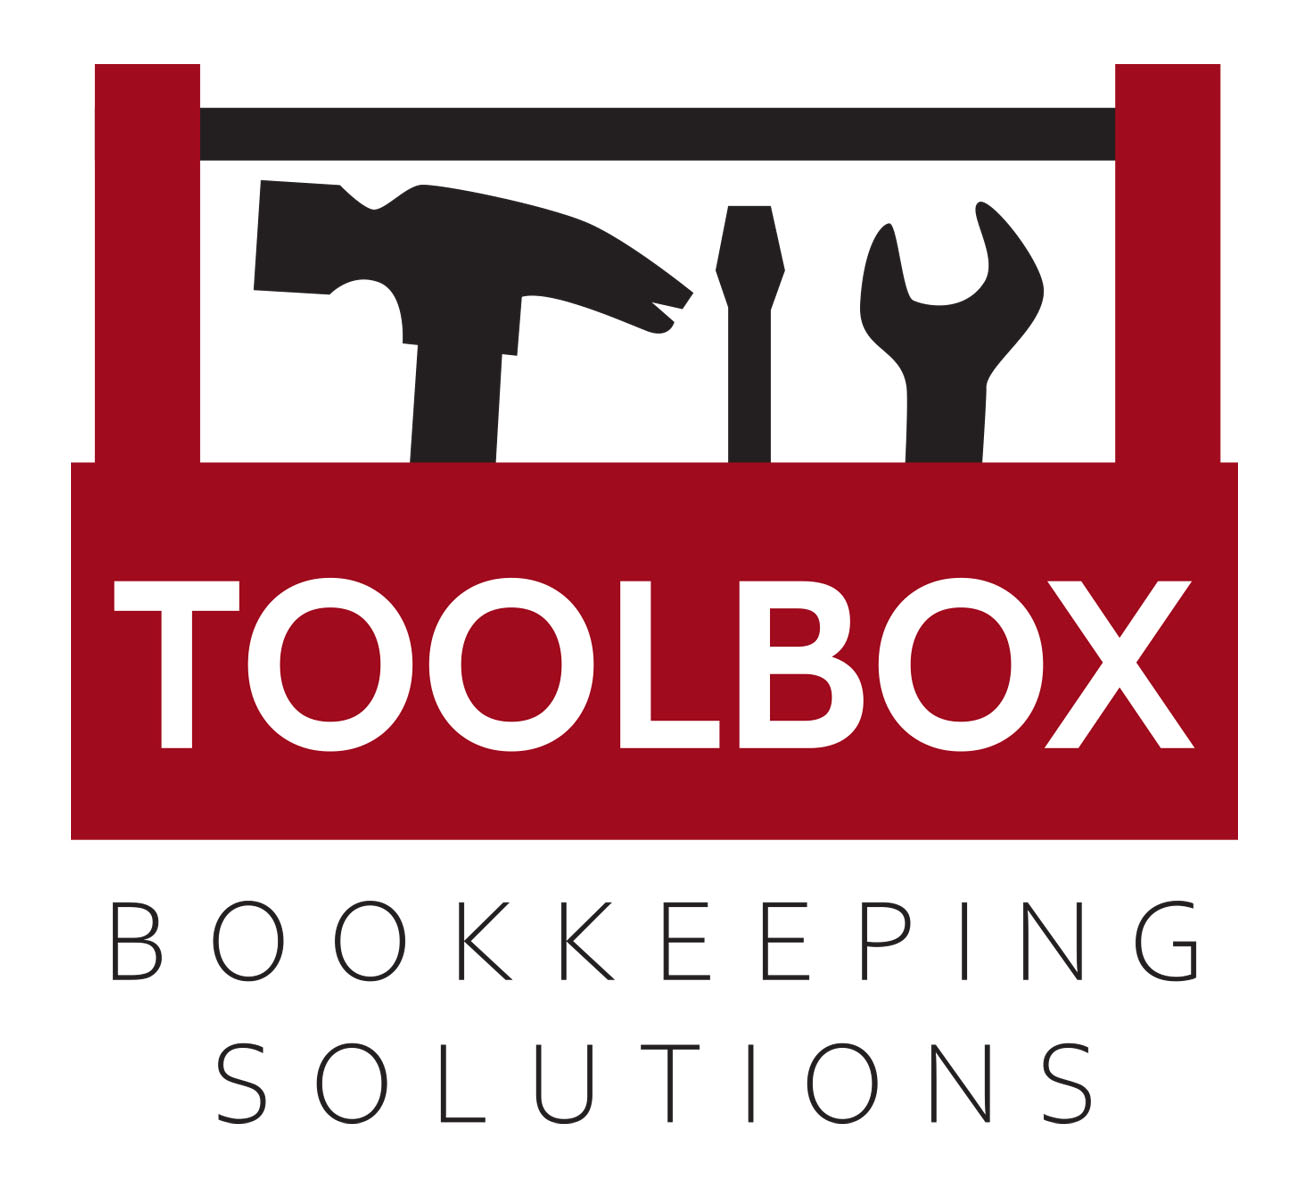 Toolbox Bookkeeping Solutions